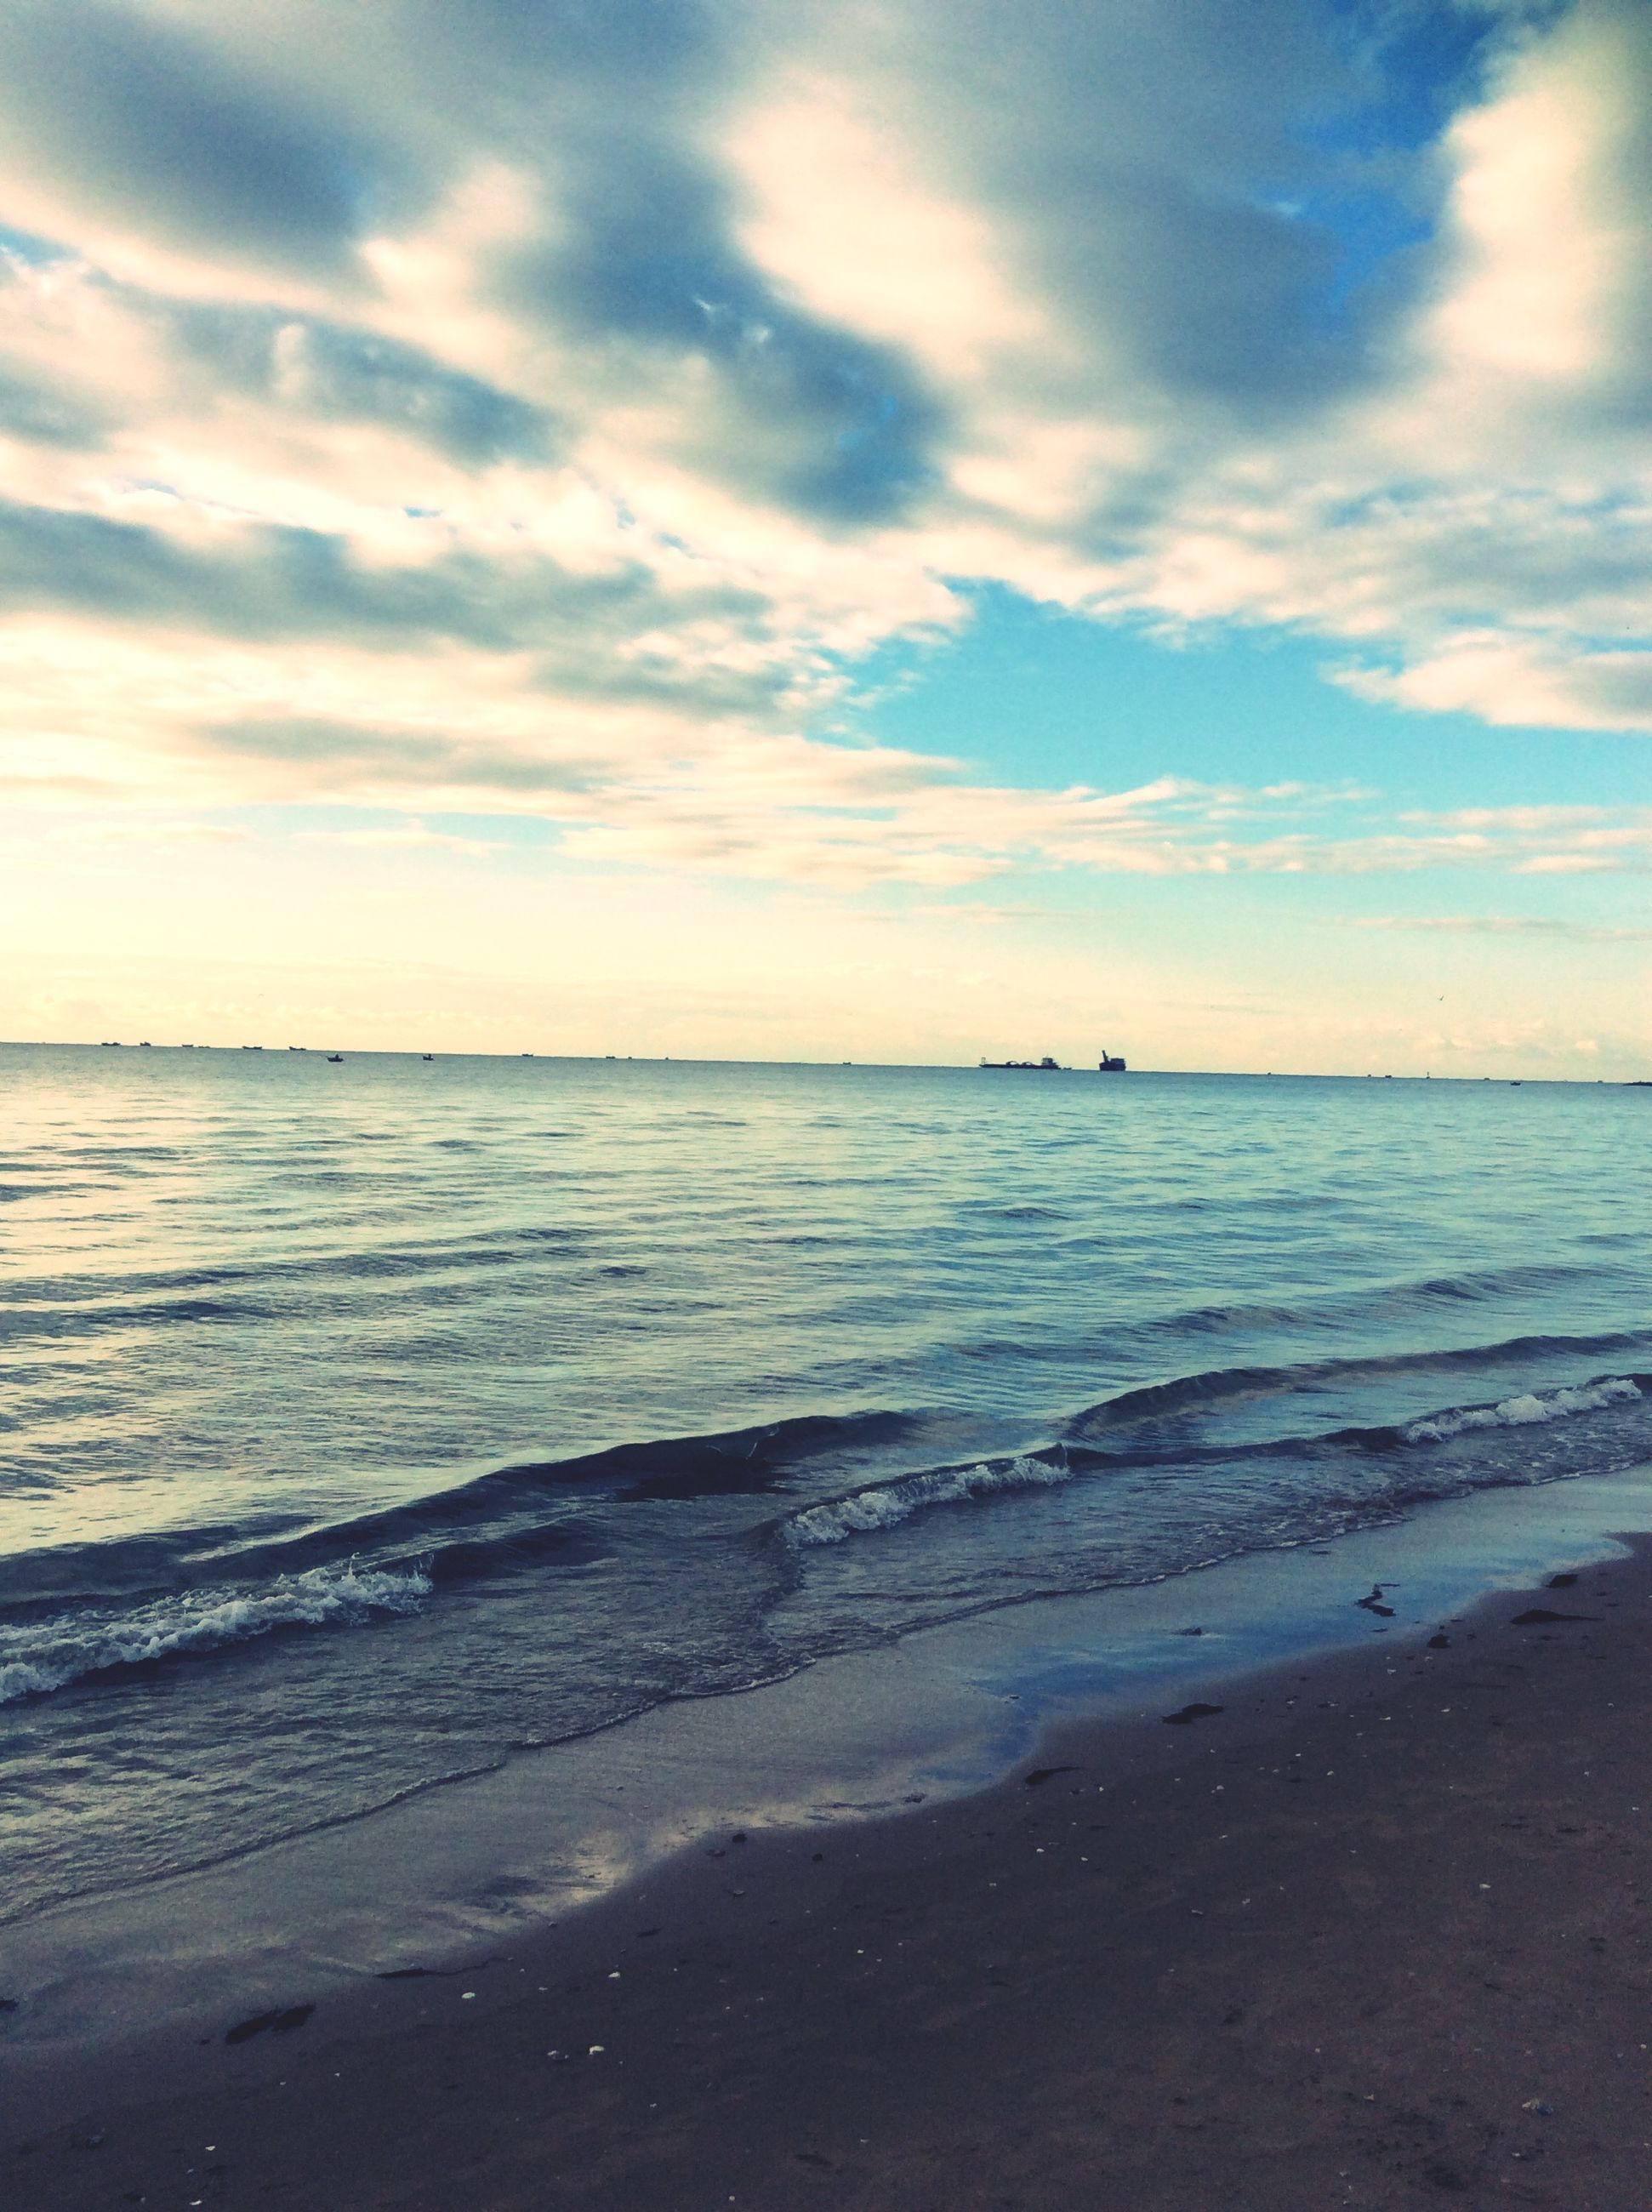 sea, beach, horizon over water, water, sky, shore, scenics, tranquil scene, tranquility, beauty in nature, cloud - sky, sand, nature, wave, idyllic, sunset, cloud, coastline, cloudy, surf